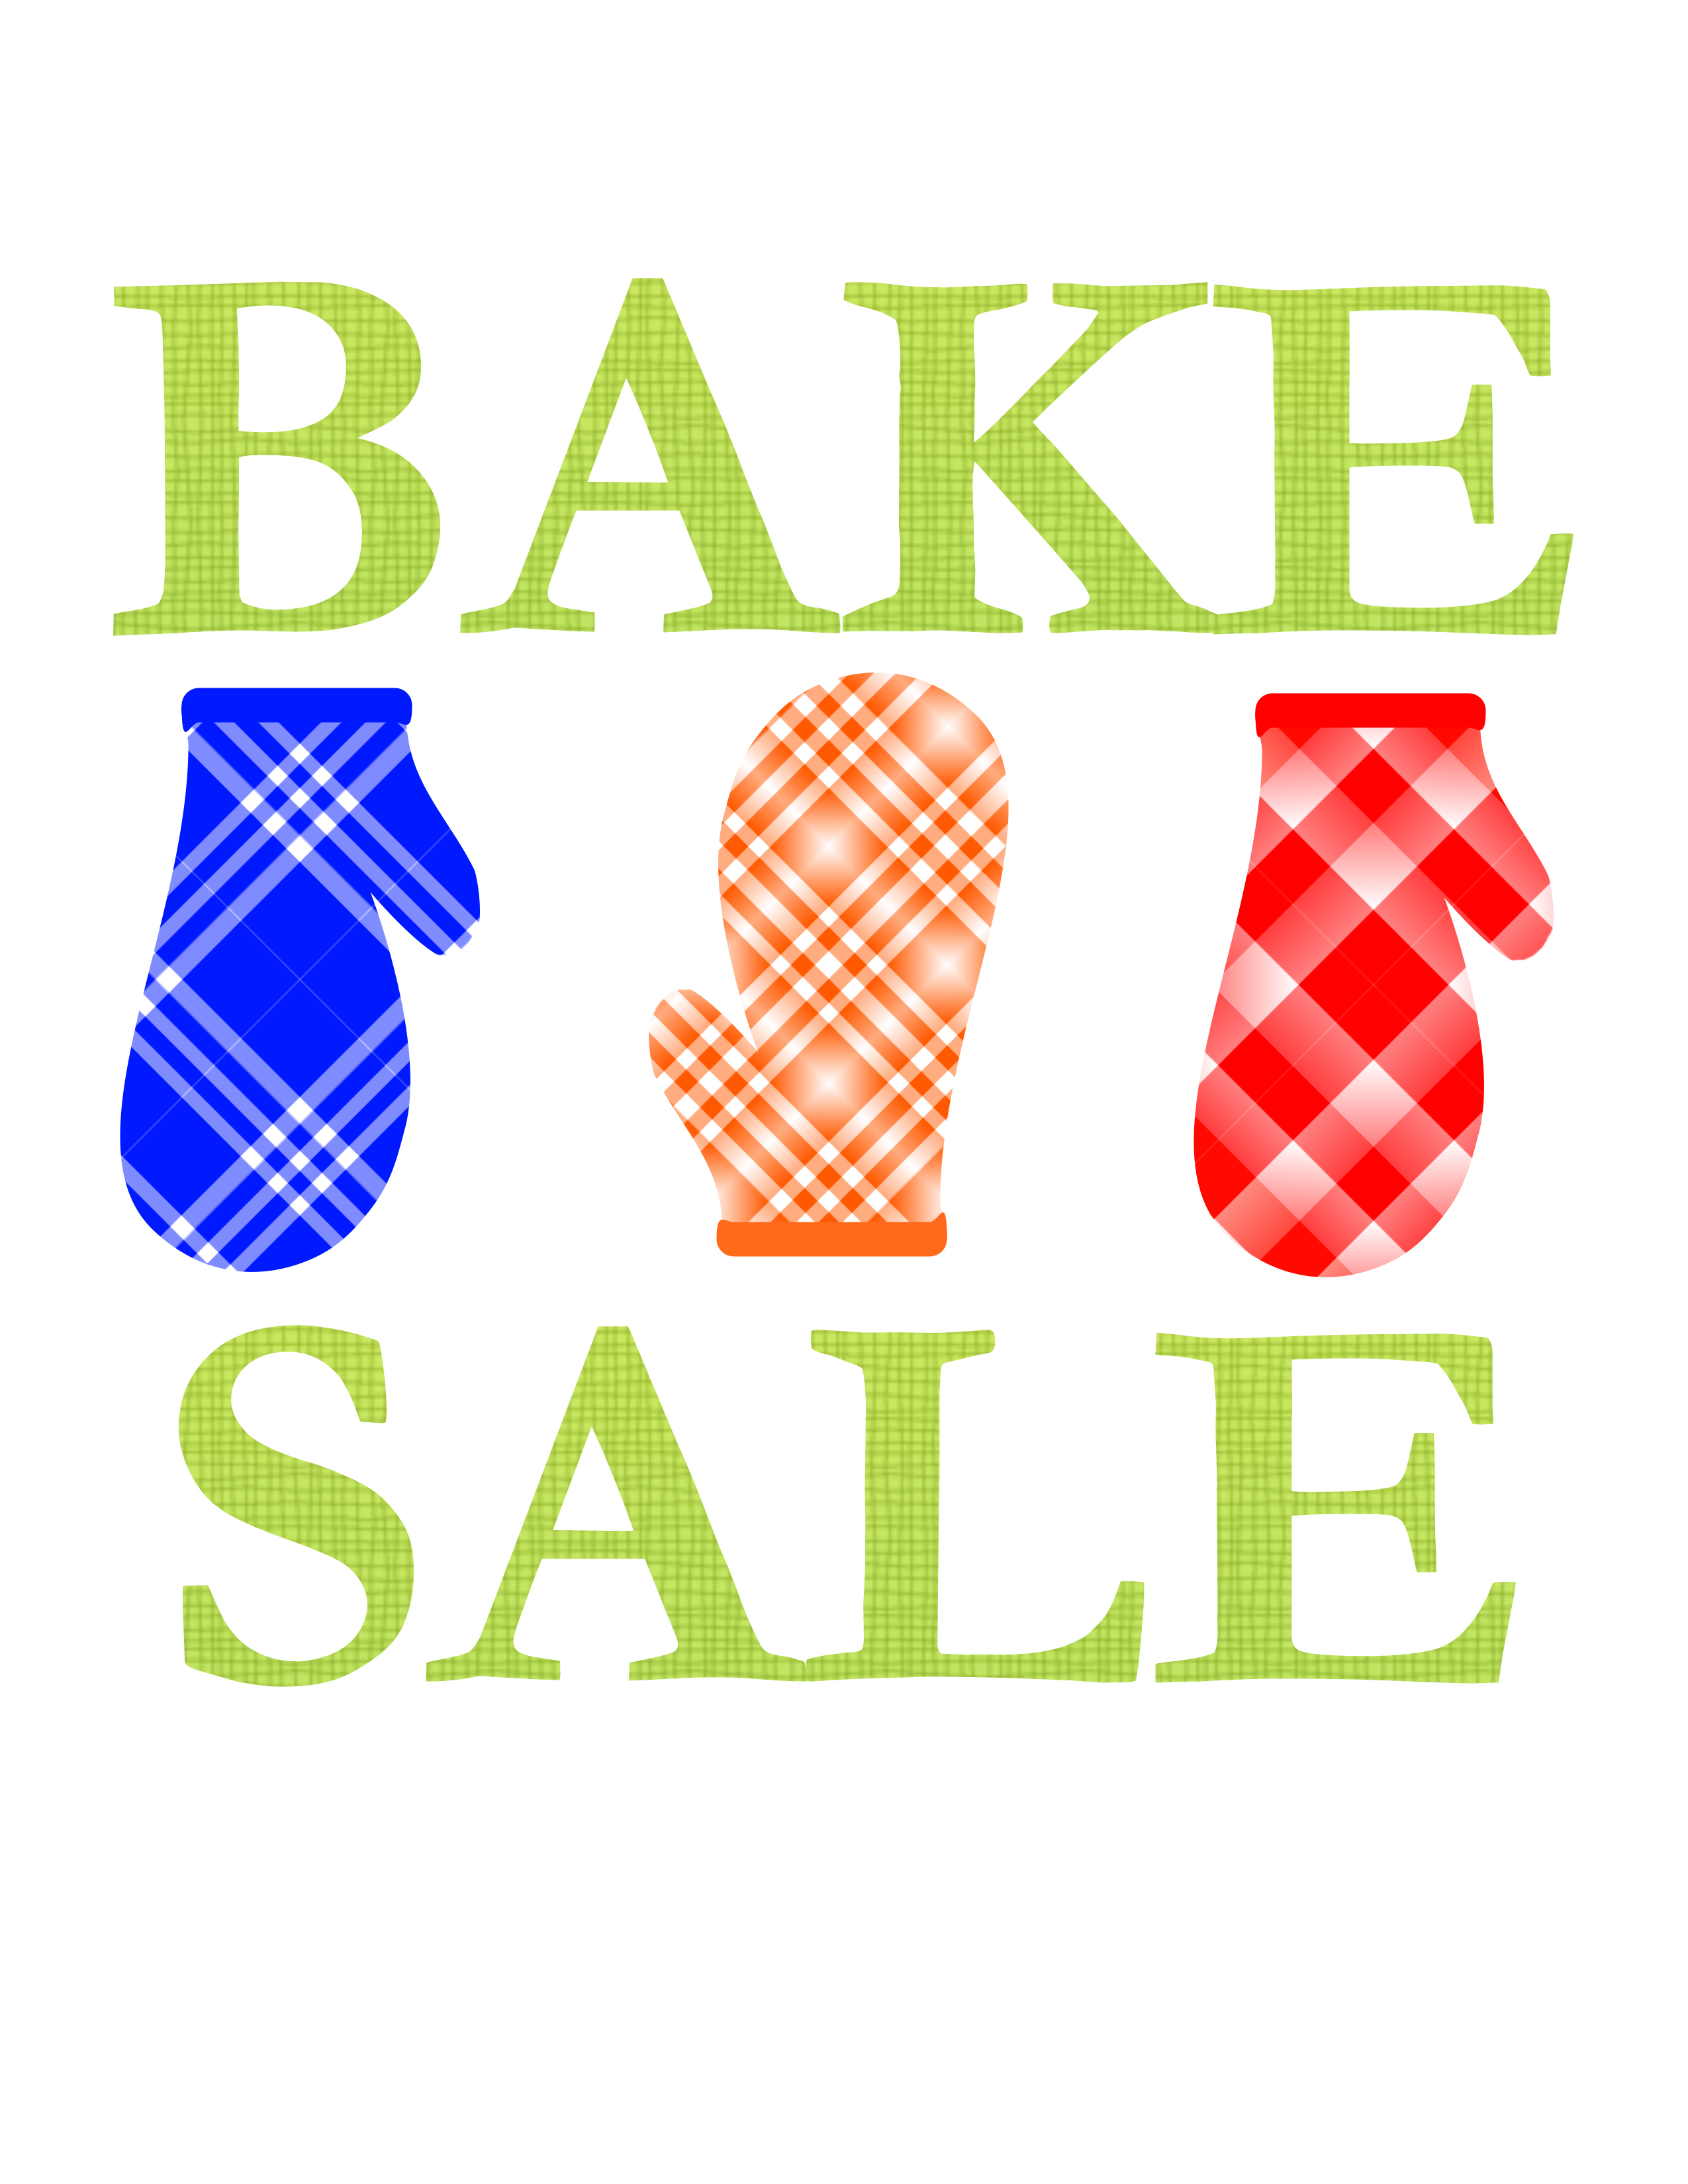 Bake sale clipart poster.